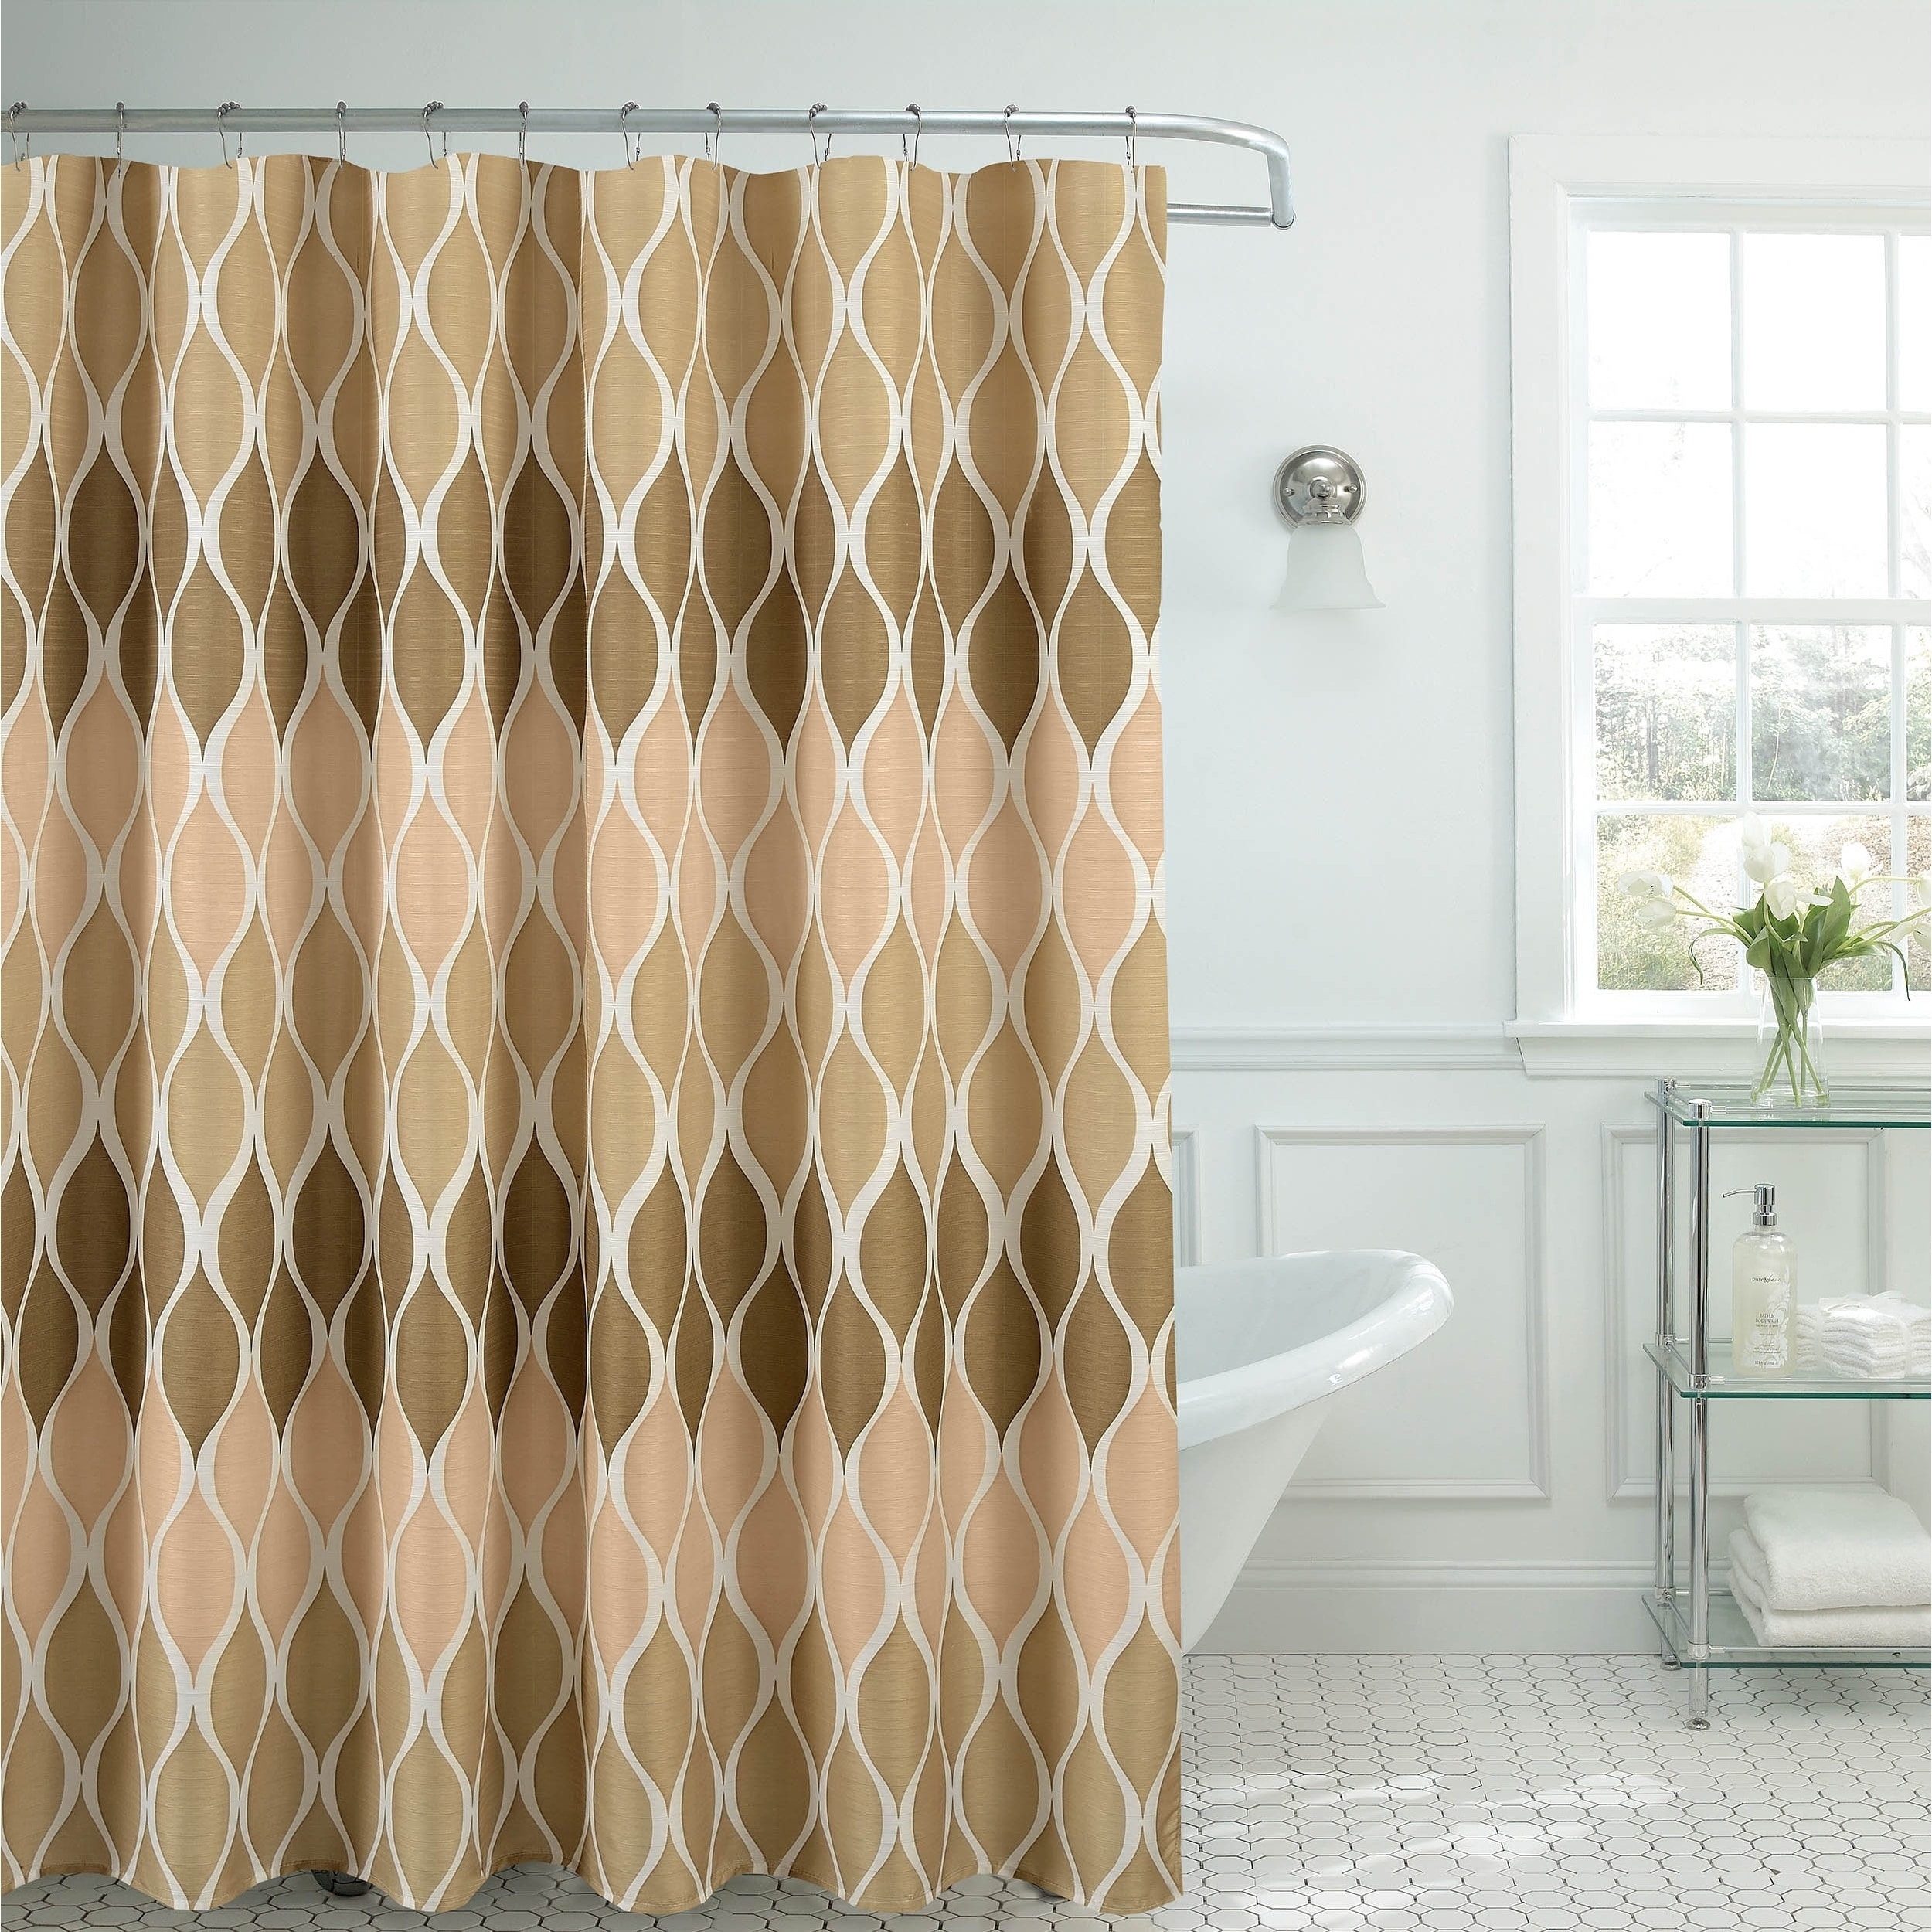 Shop Clarisse Faux Linen Textured Shower Curtain With 12 Metal Rings